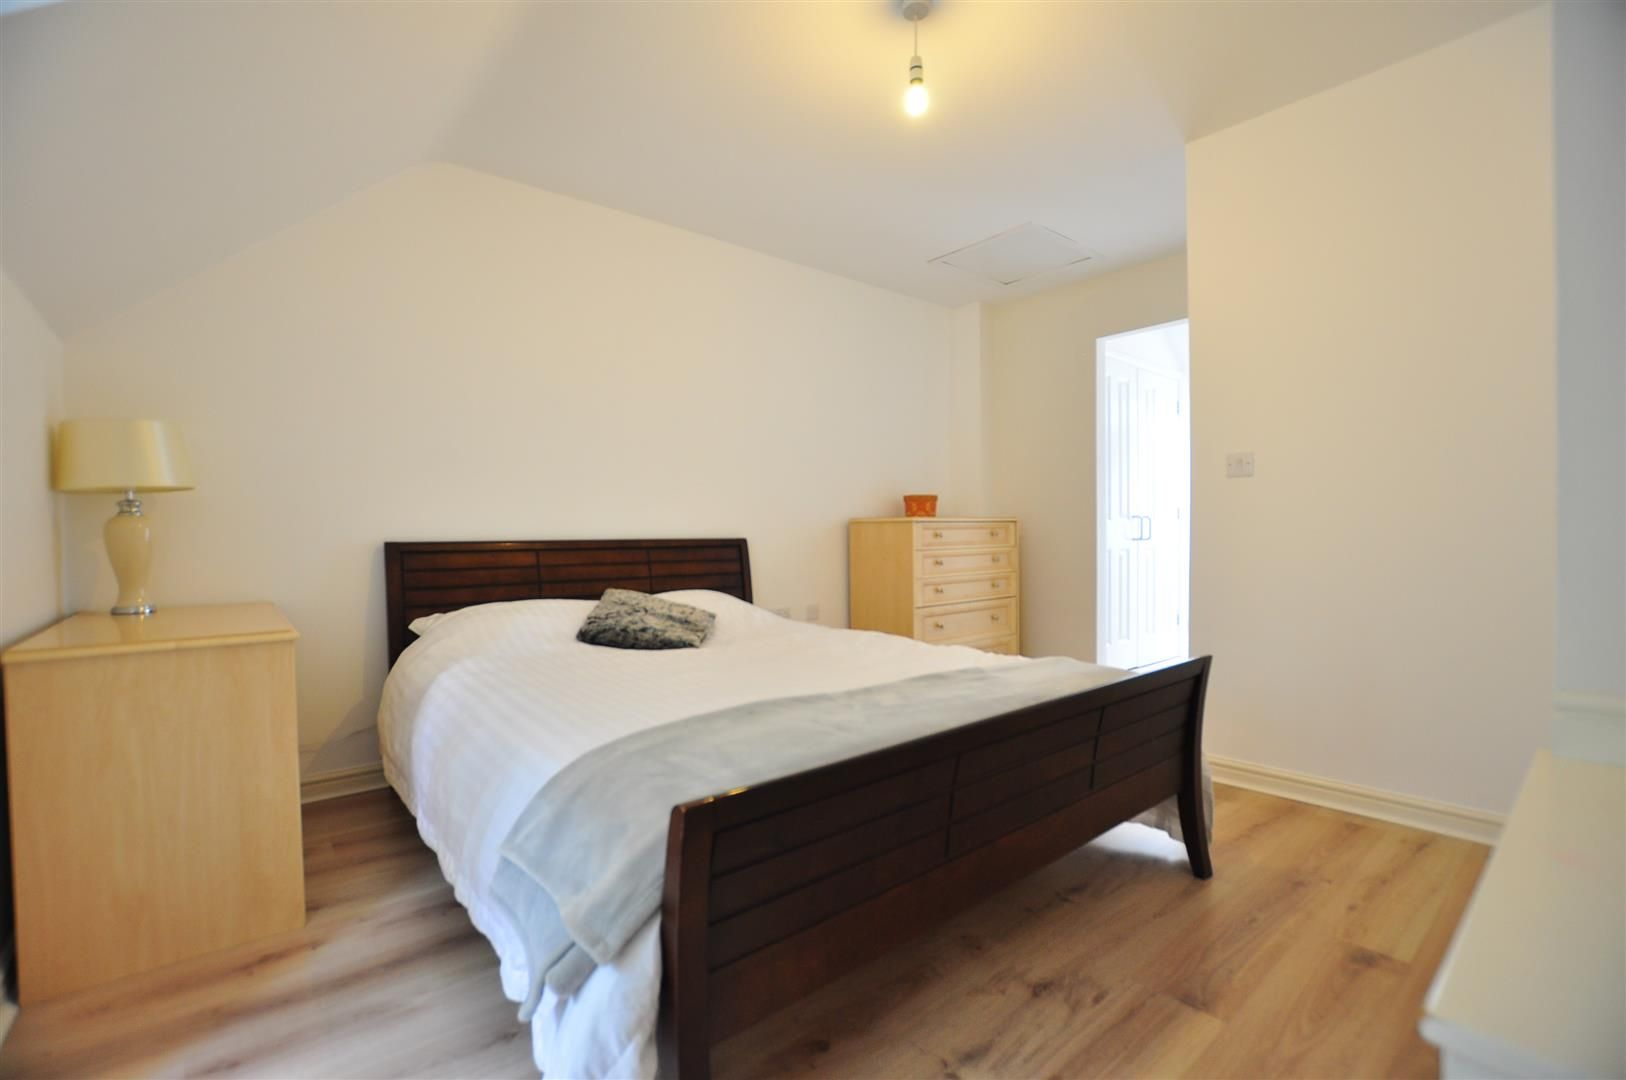 4 bed end-of-terrace for sale 6